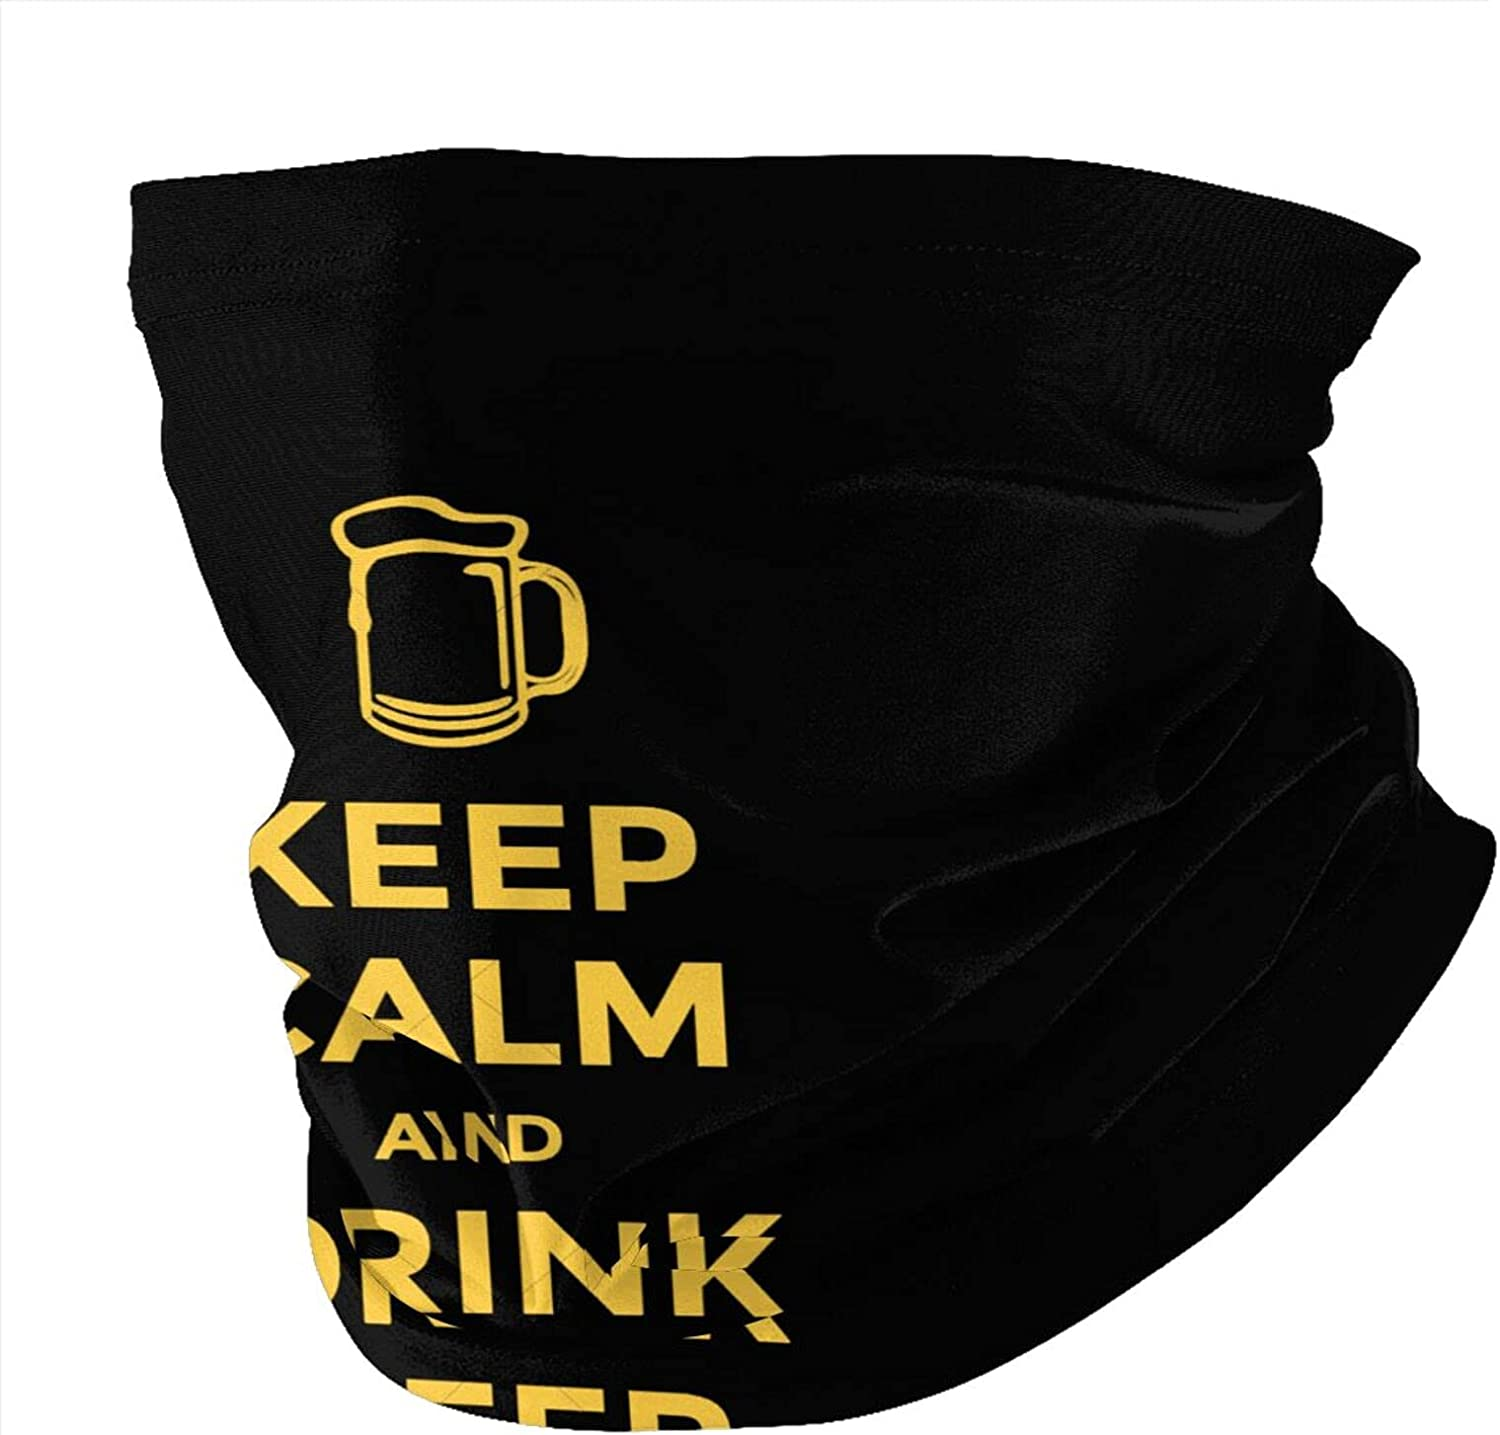 Keep Calm and Have a Beer Seamless Neck Shield Scarf face Shield Seamless UV Protection Motorcycle Riding Running Hood Black